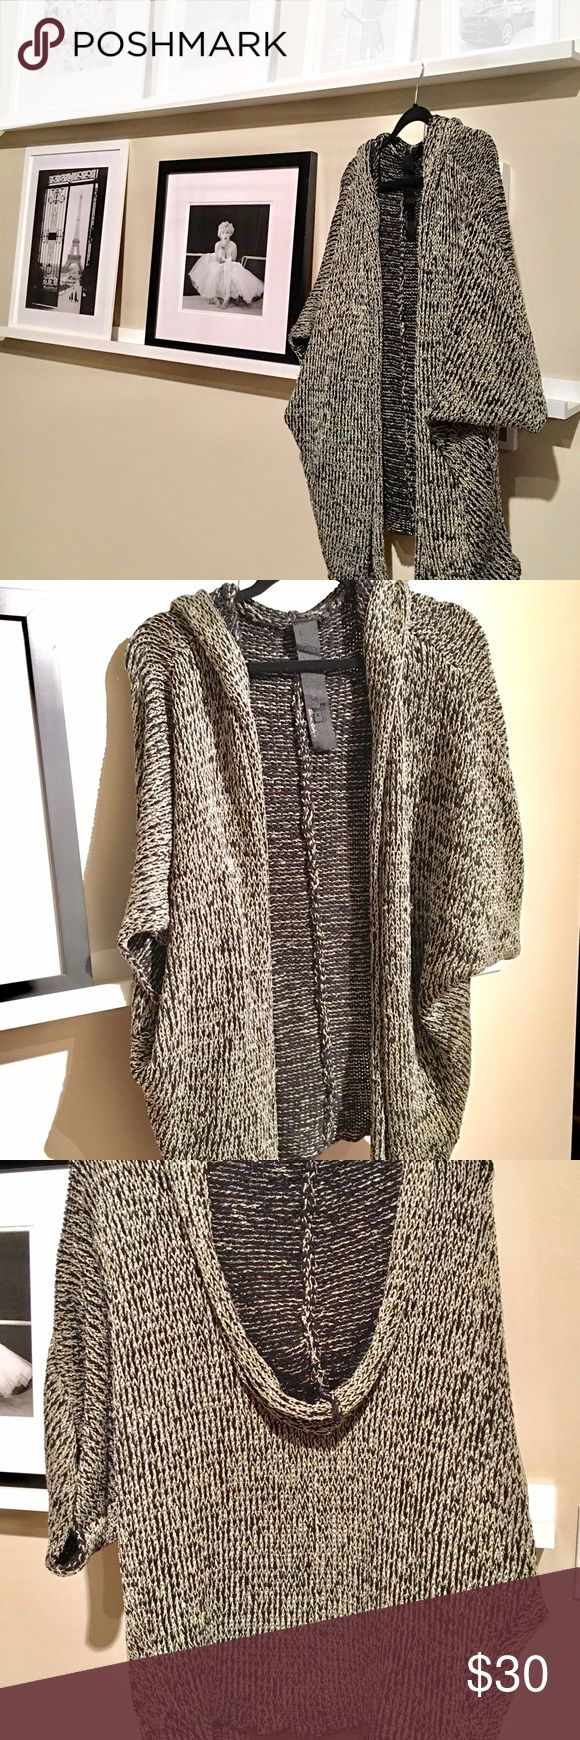 Joes jeans  hooded metallic sweater cardigan JOES  jeans  Hooded metallic hoodie sweater cardigan  loose baggy fit Joes jeans Tops